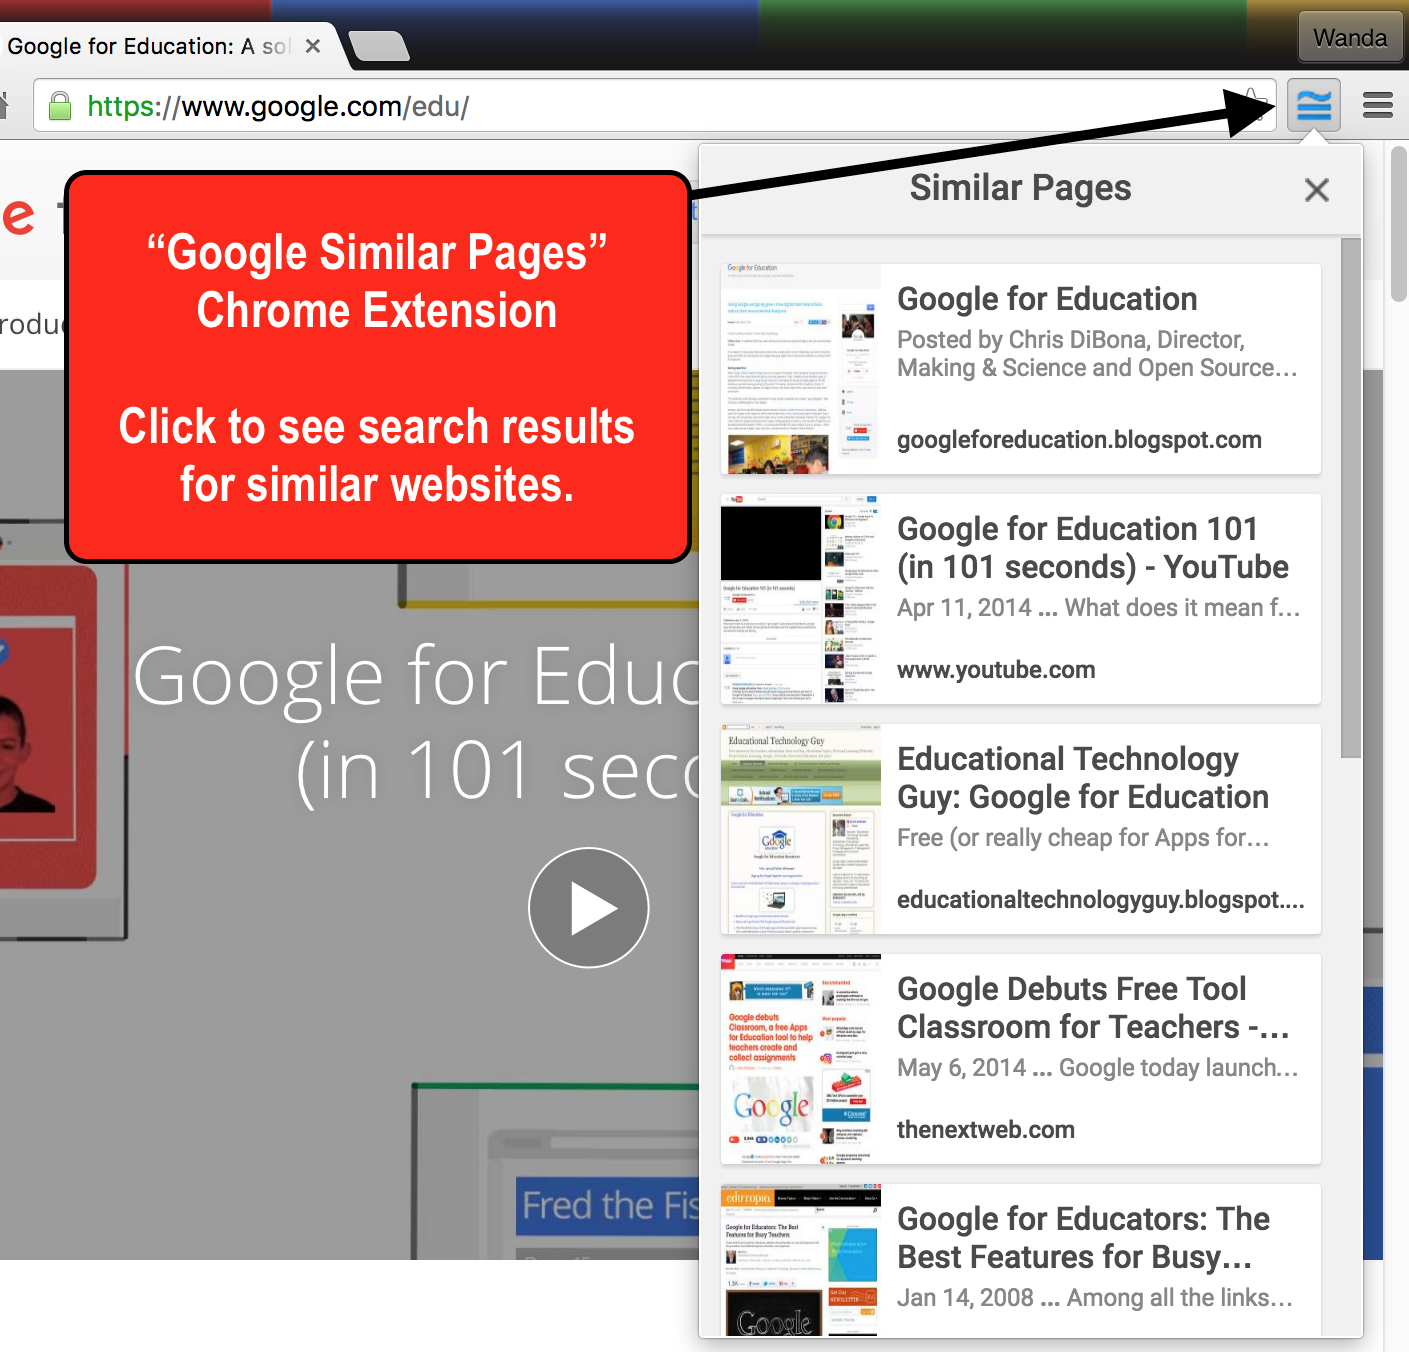 """Google Similar Pages: Chrome Extension"